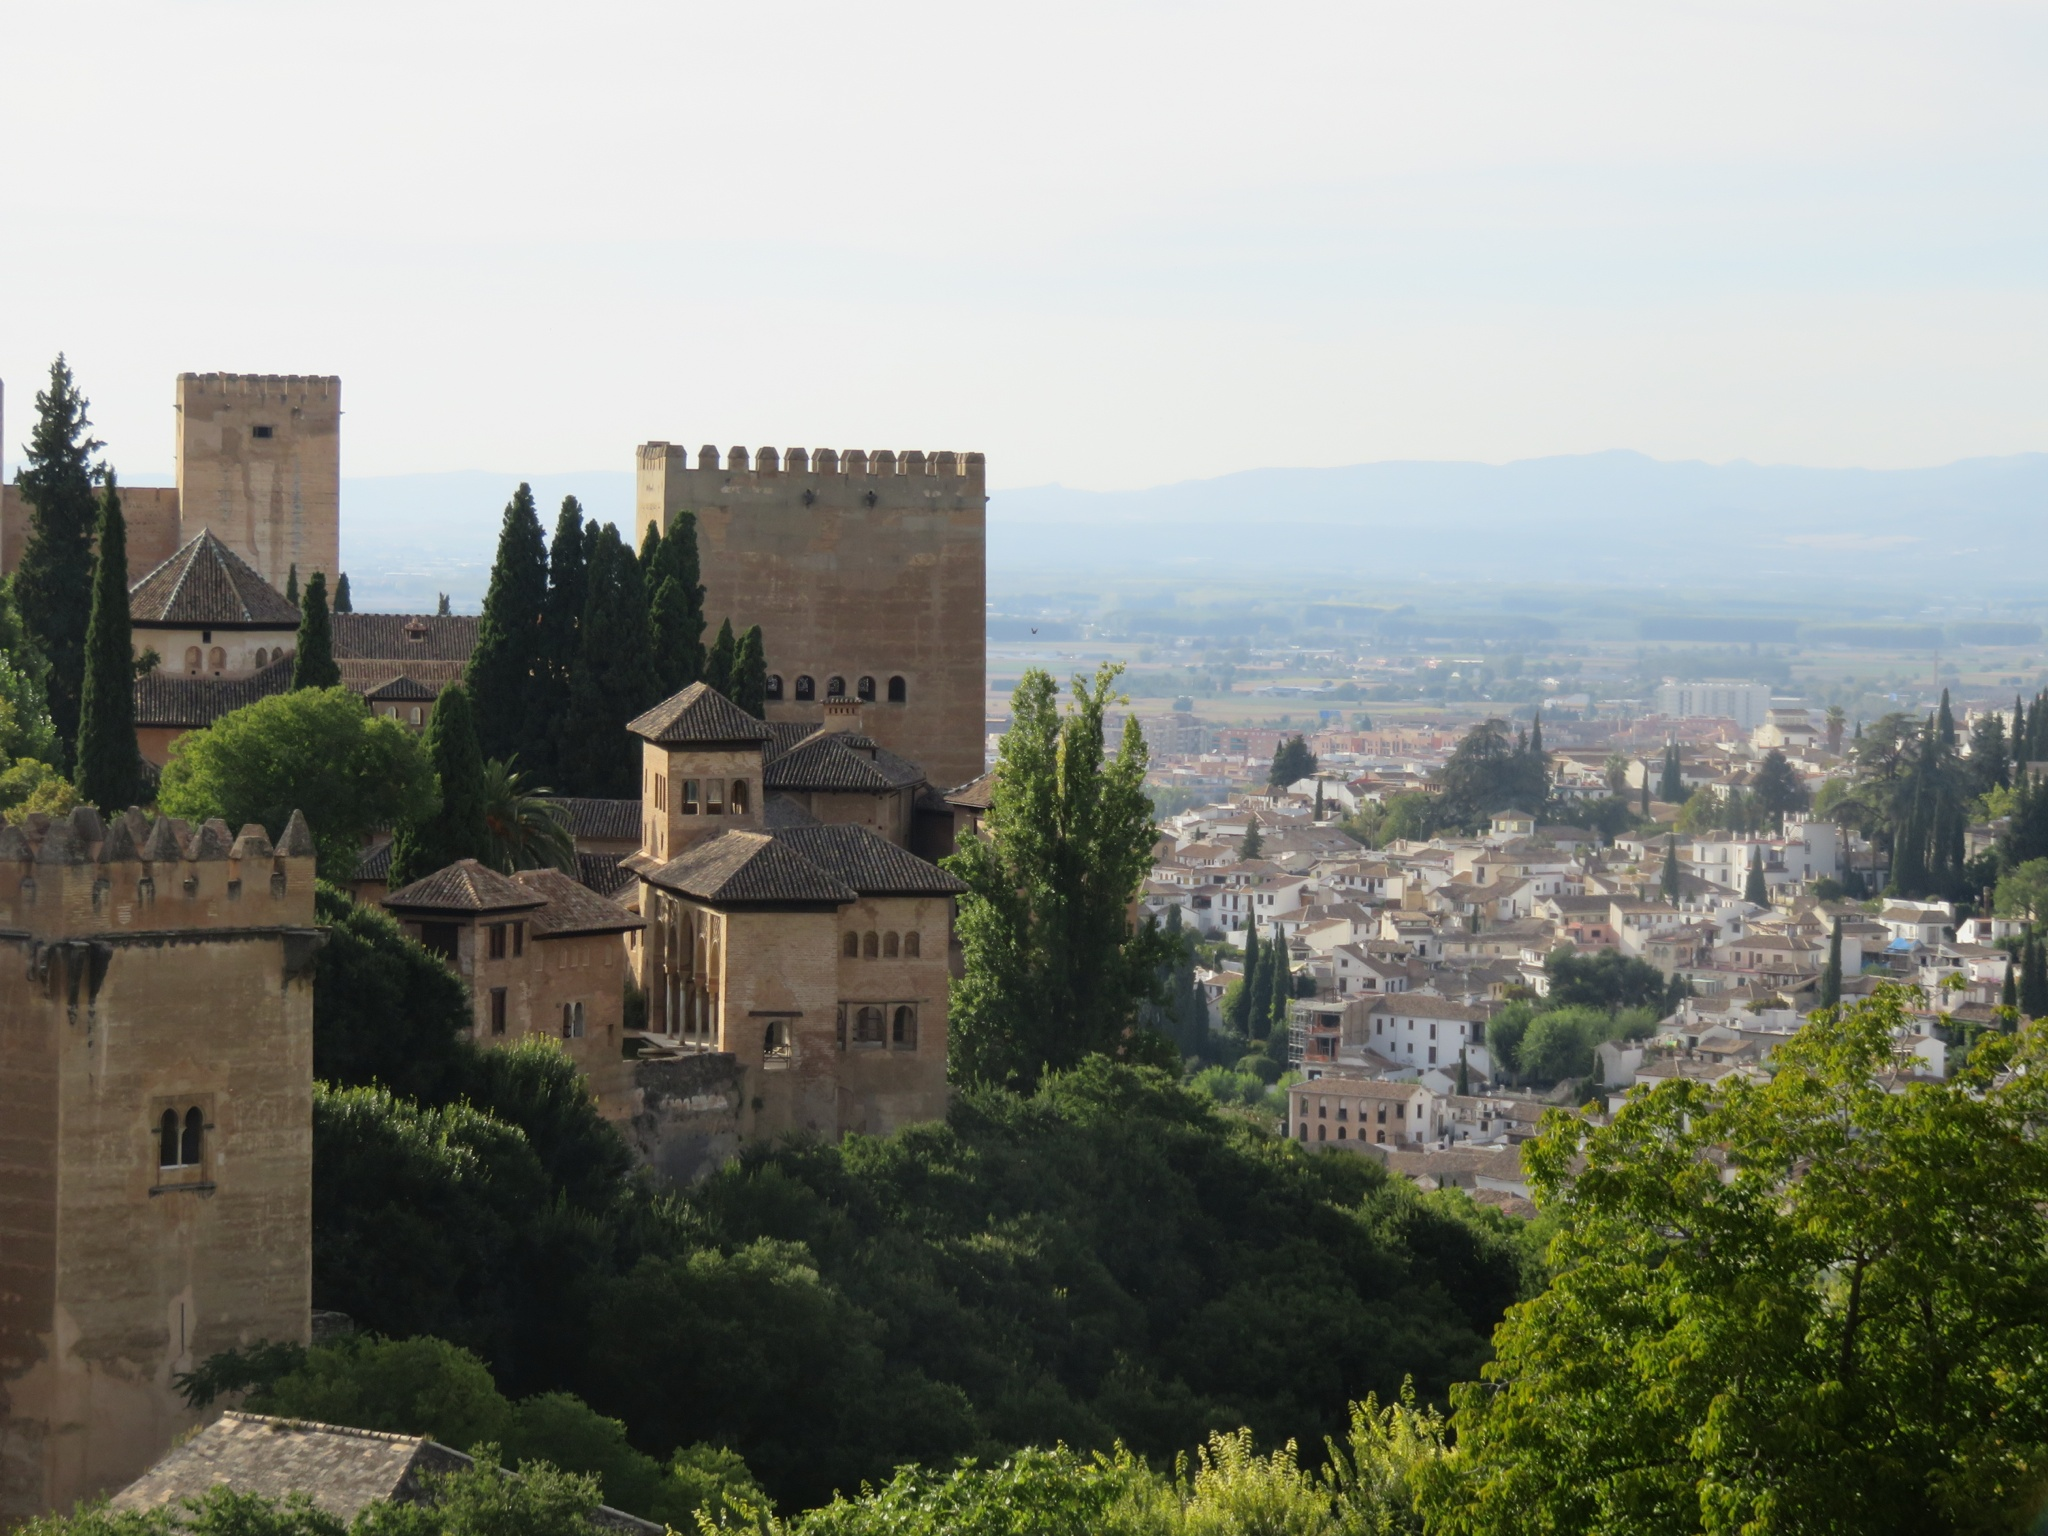 view of the Alhambra from the summer palace